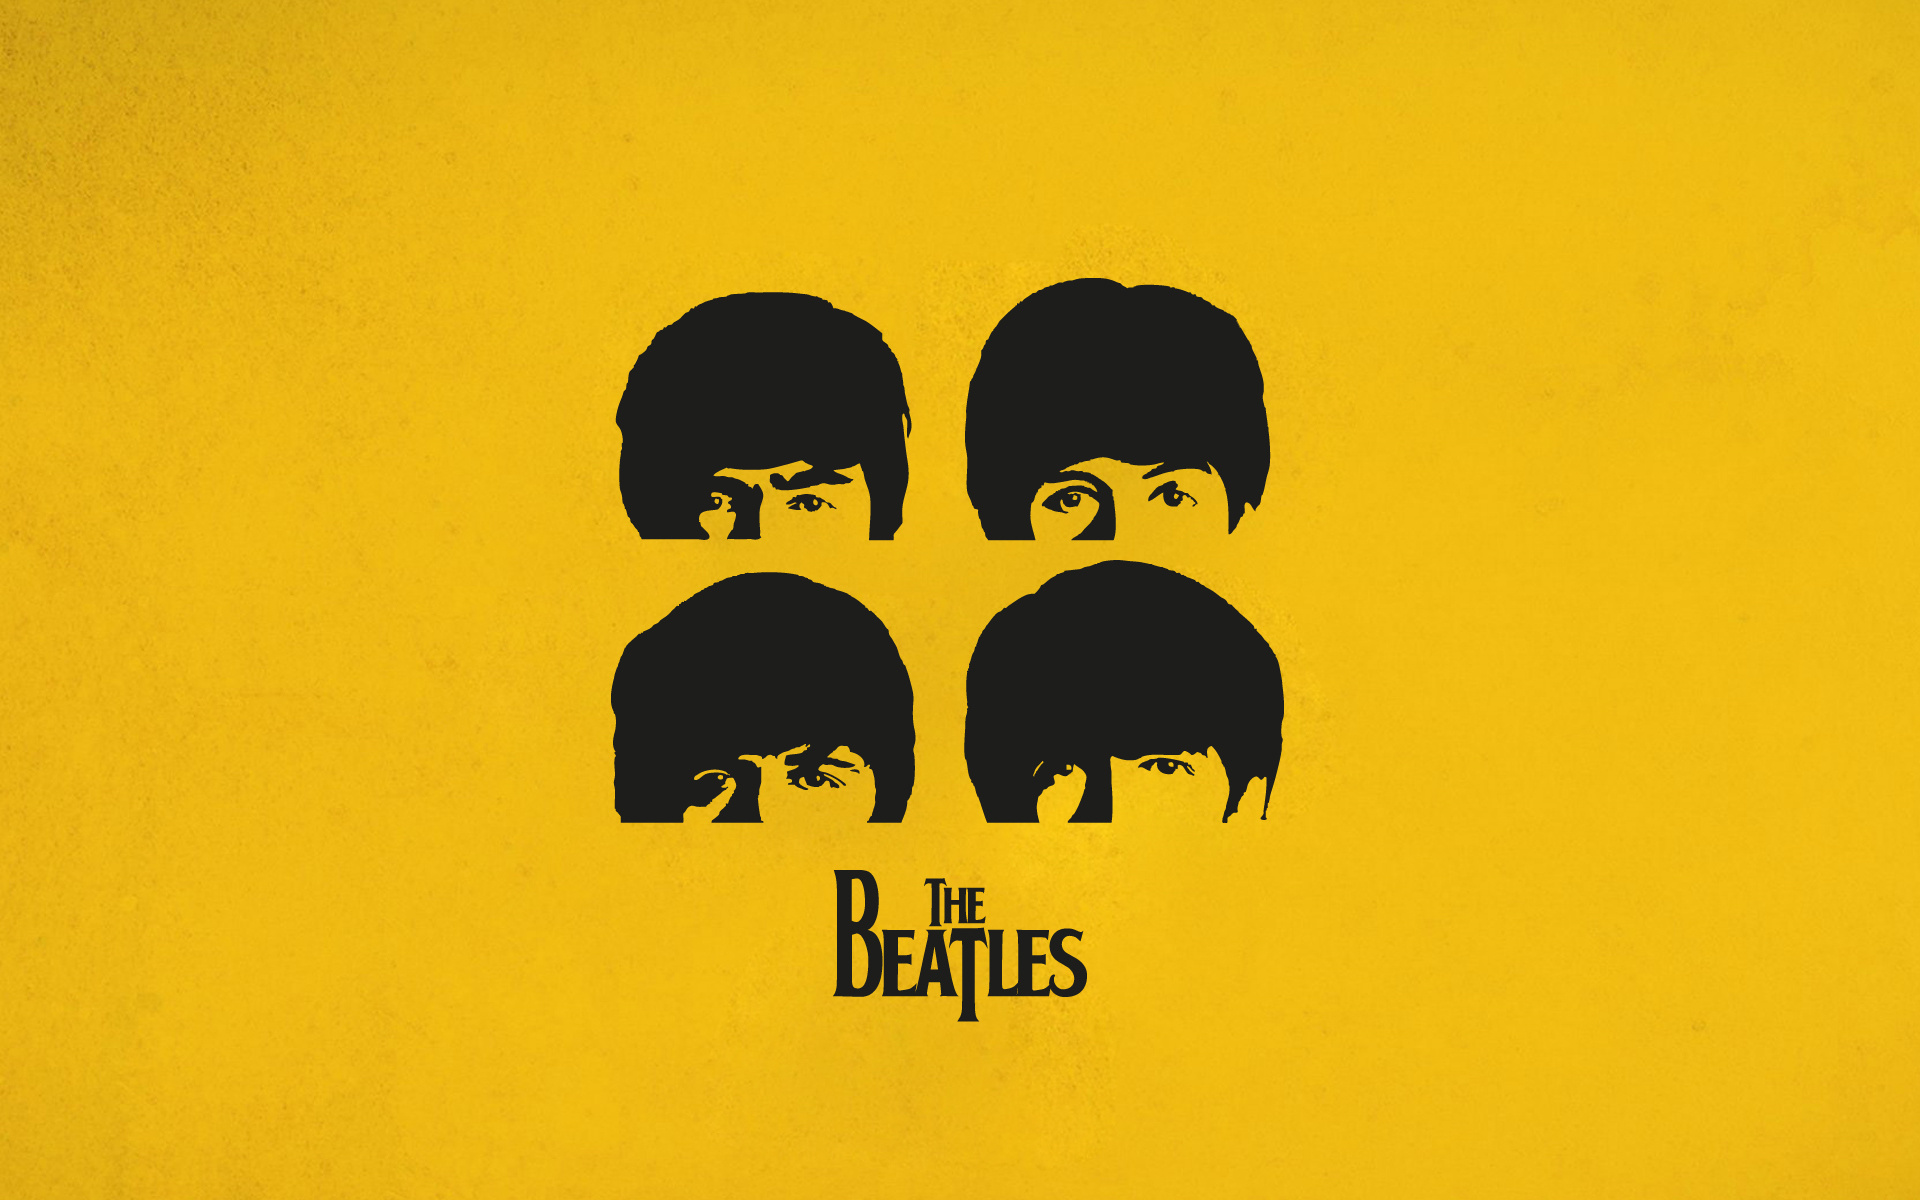 The Beatles Wallpapers ID439145